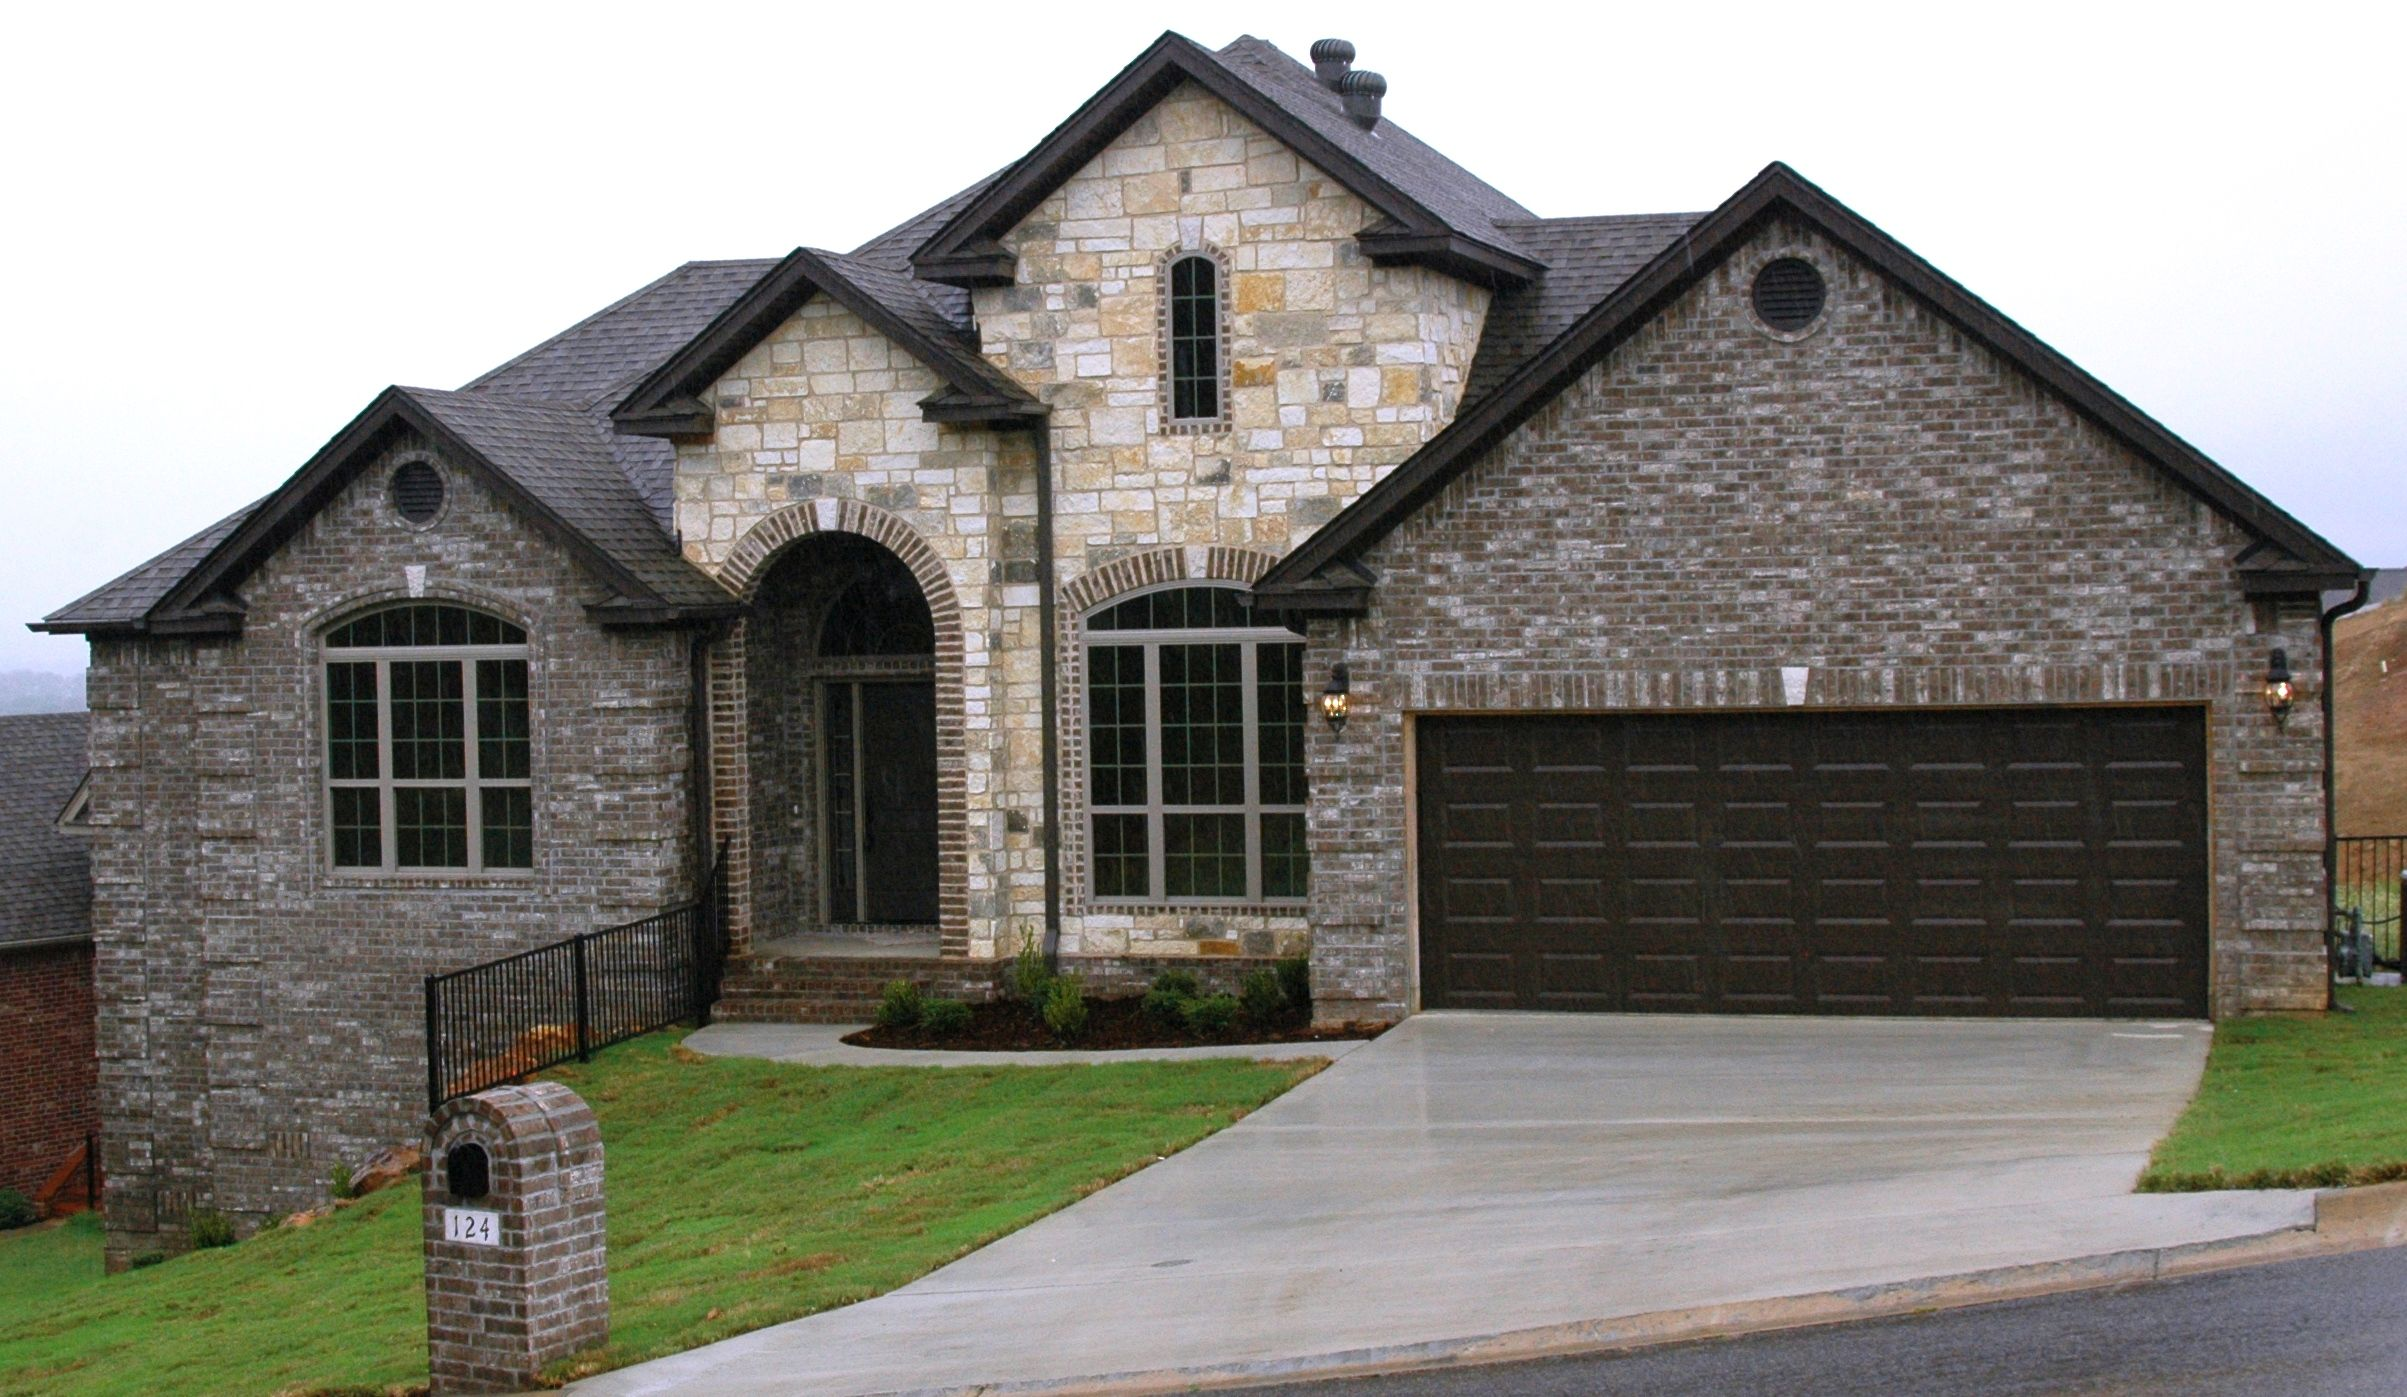 Little rock houses for sale and little rock real estate Home builders in arkansas